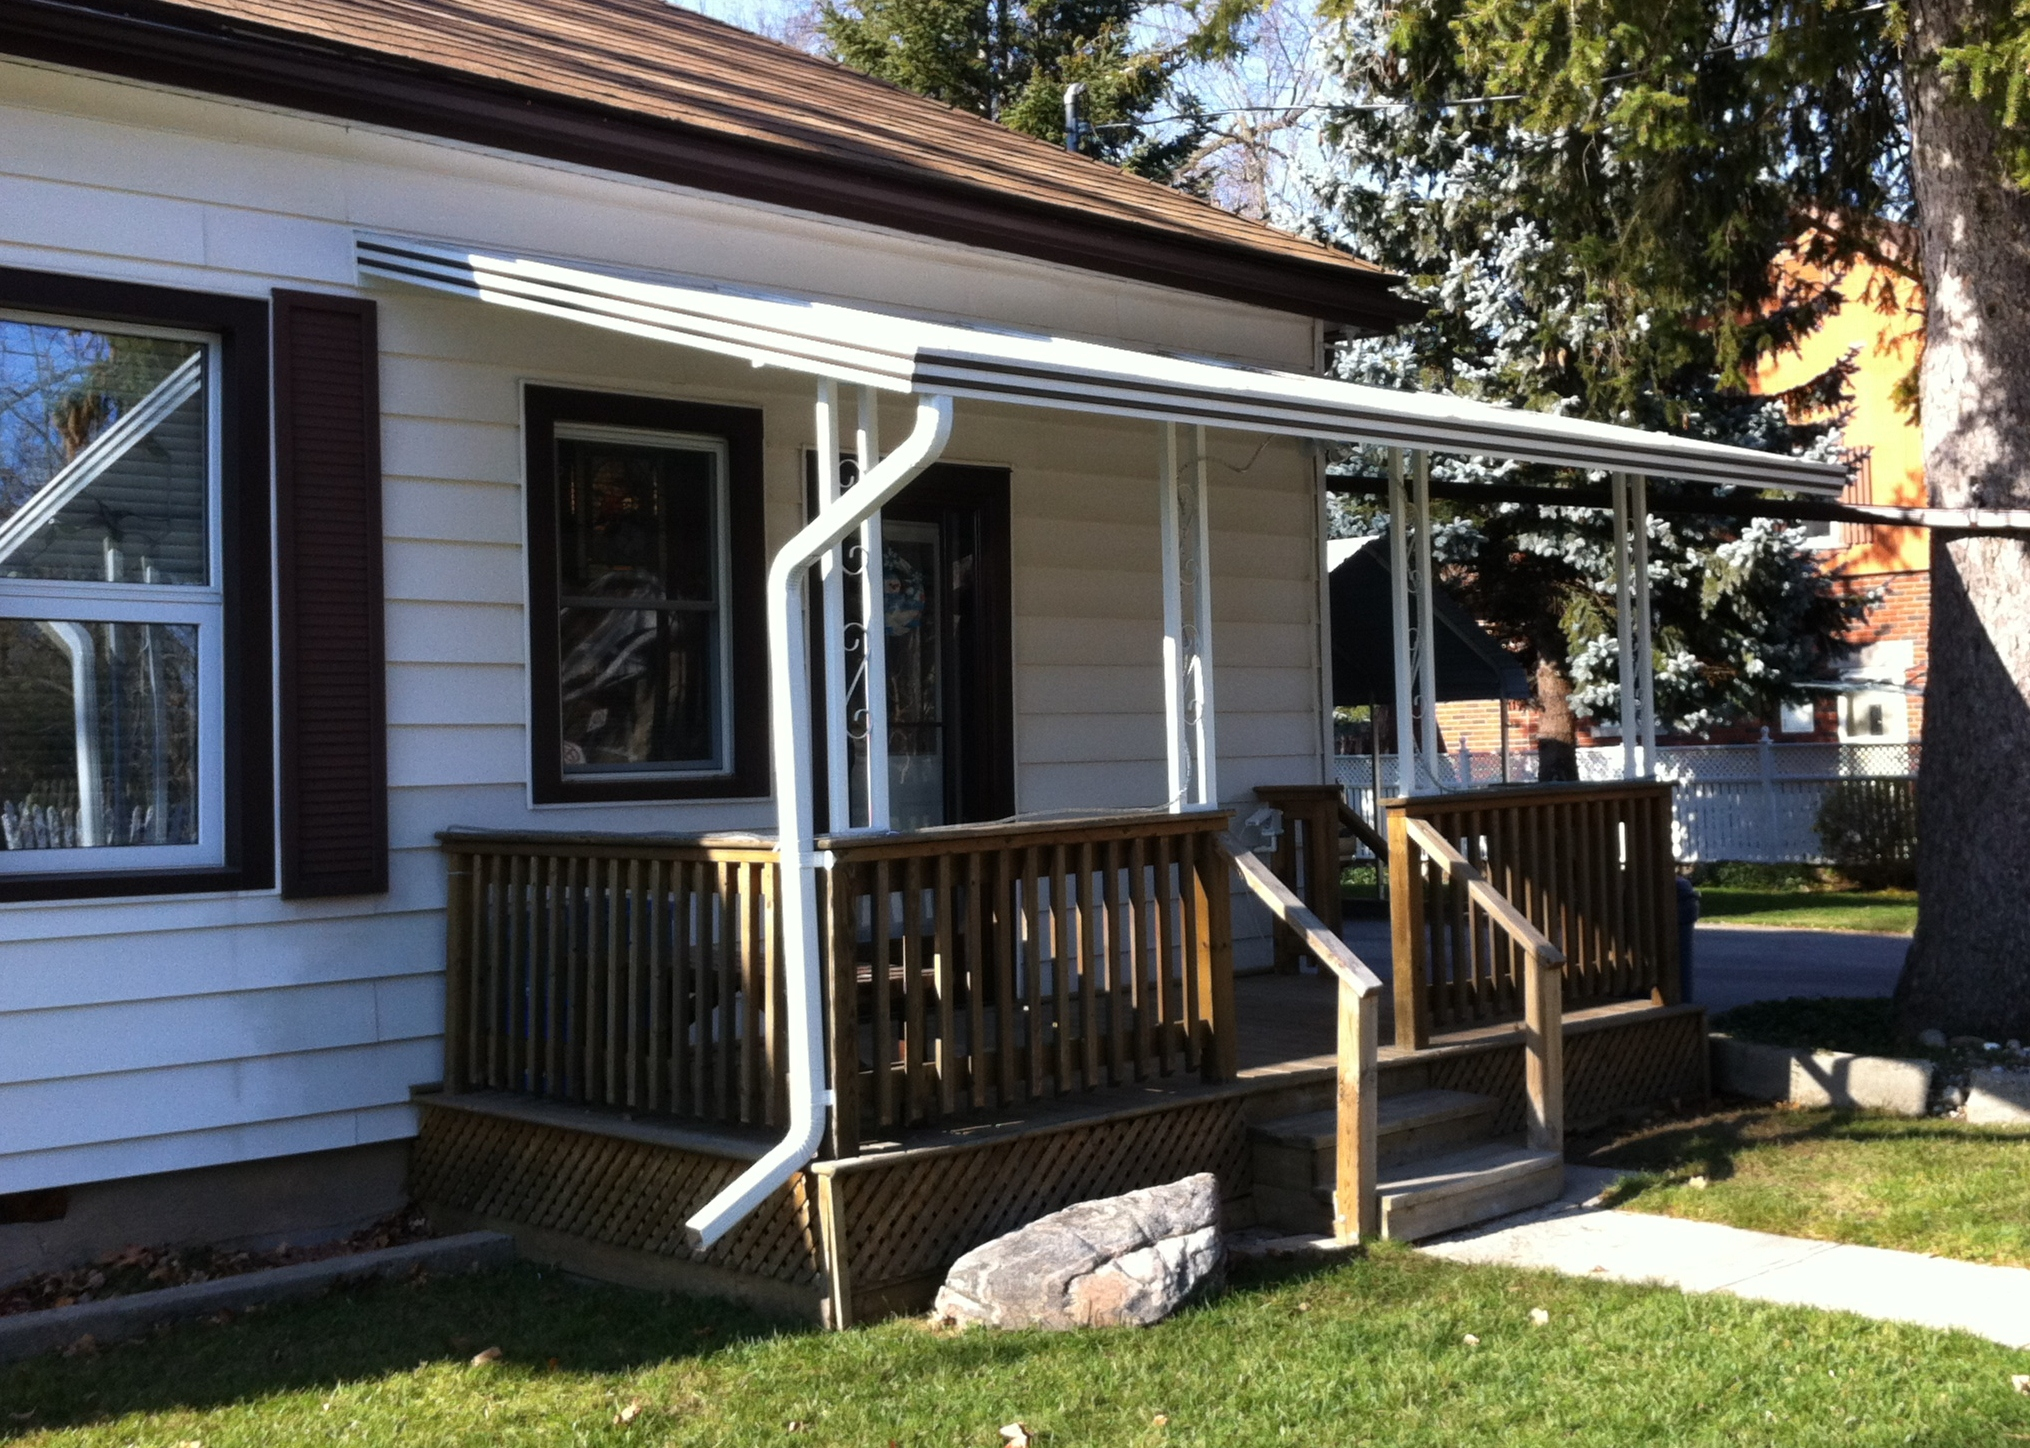 New 3-Season Sunroom Roof Awning with Gutter System